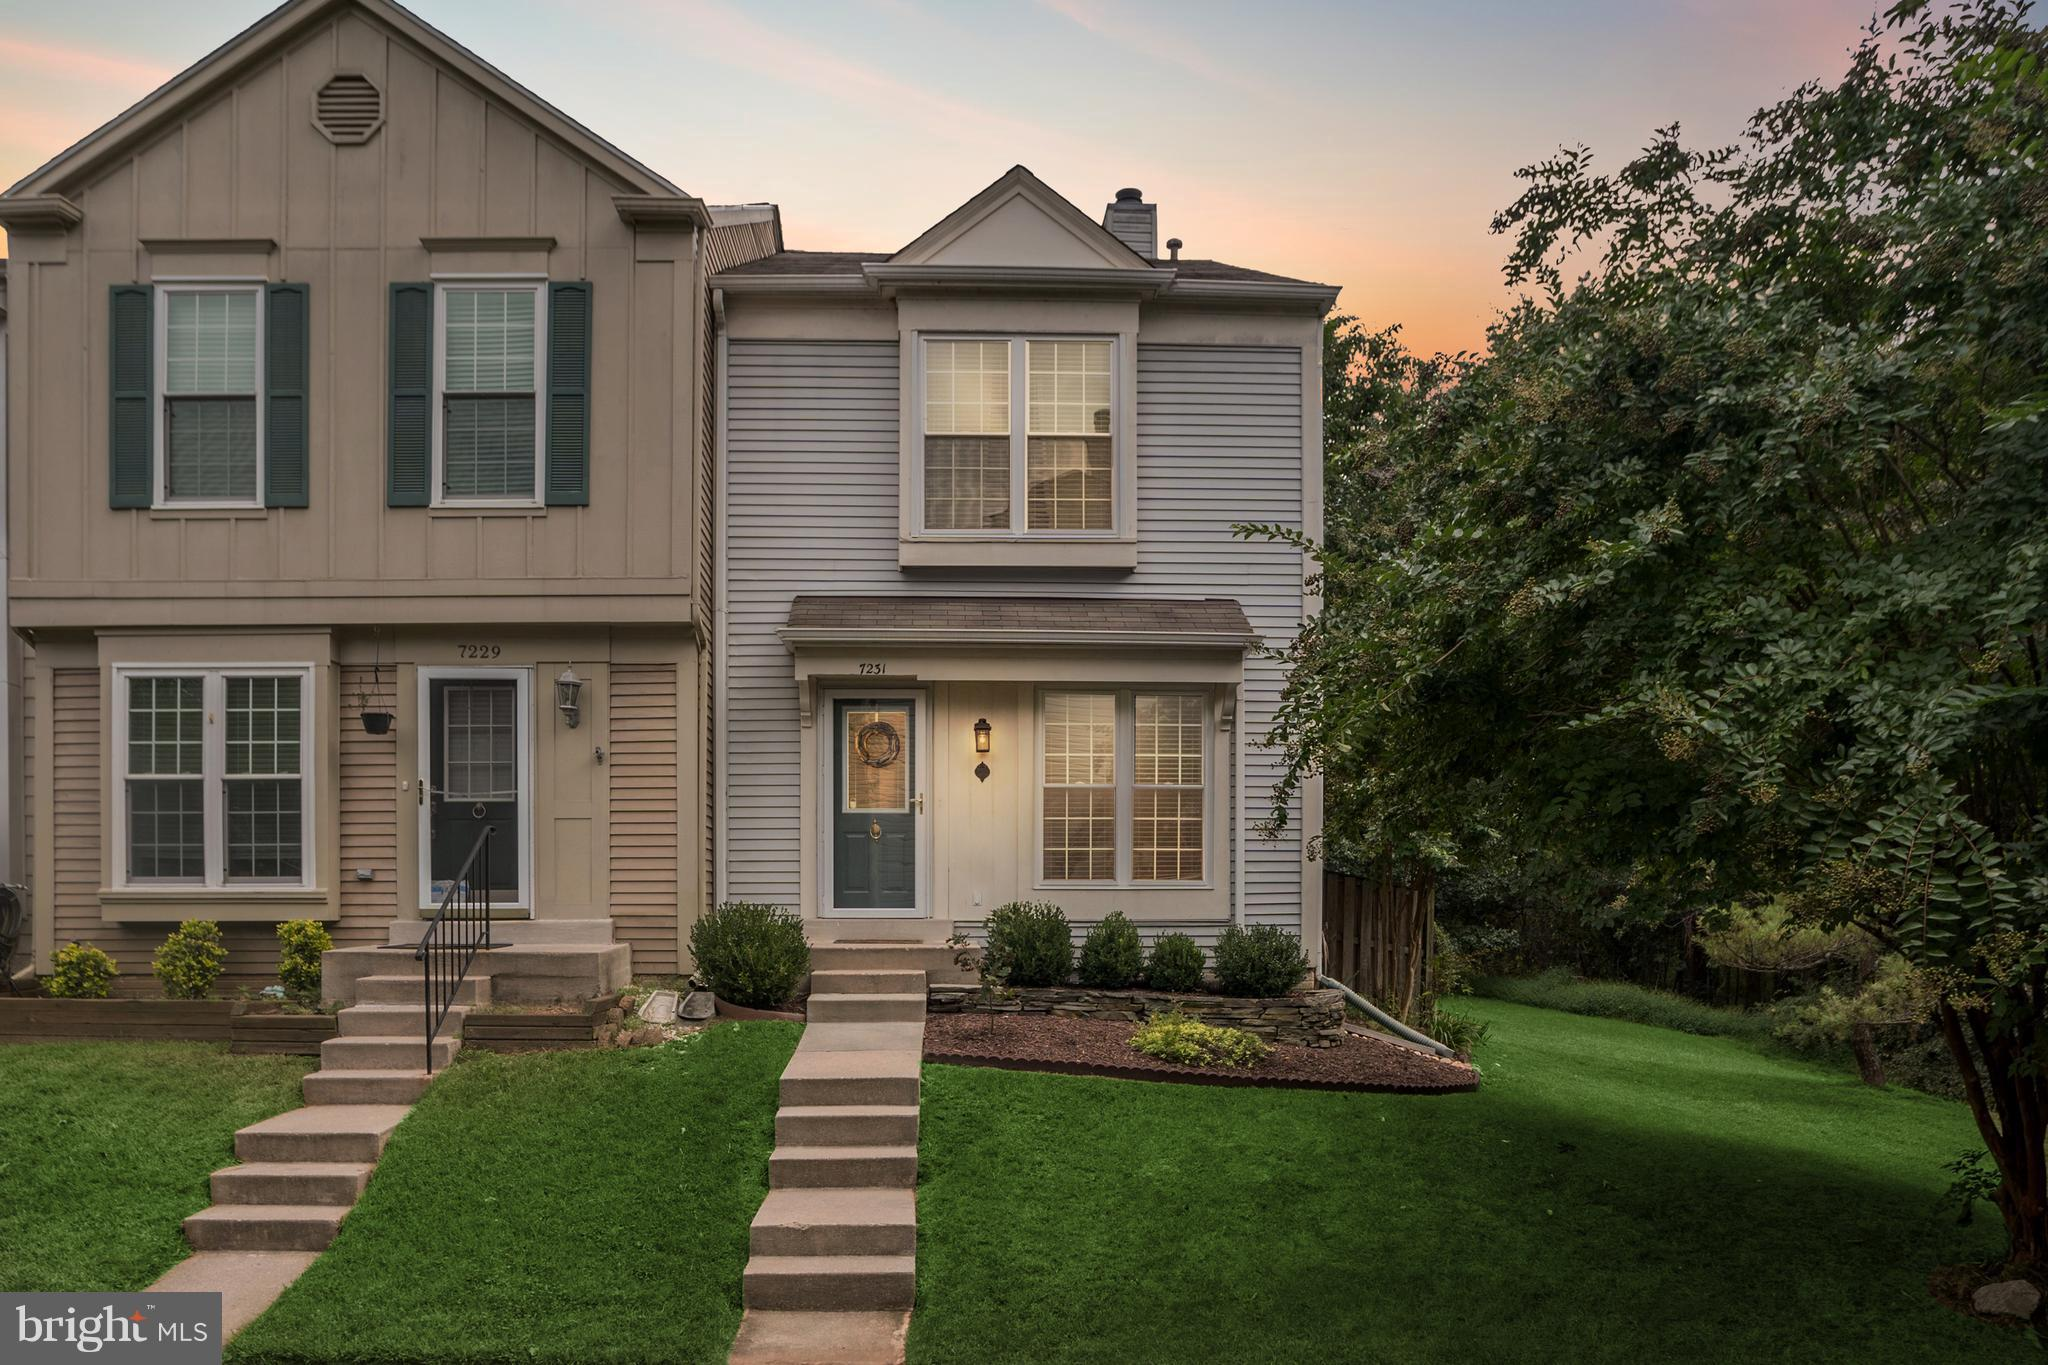 Beautiful 3-level End-Unit adjoins Huntley Meadows Park. Fantastic private & quiet location. Numerous updates: New windows (2017), floors (2016), refrigerator (2014), Hot Water Heater (2015). Two Master Bedrooms, each with en-suite bath. Living room has wood-burning fireplace. Lower lvl now a guest BR - great for rec room, exercise room, office, etc. Assumable FHA loan @ 3.25%. Home Warranty!